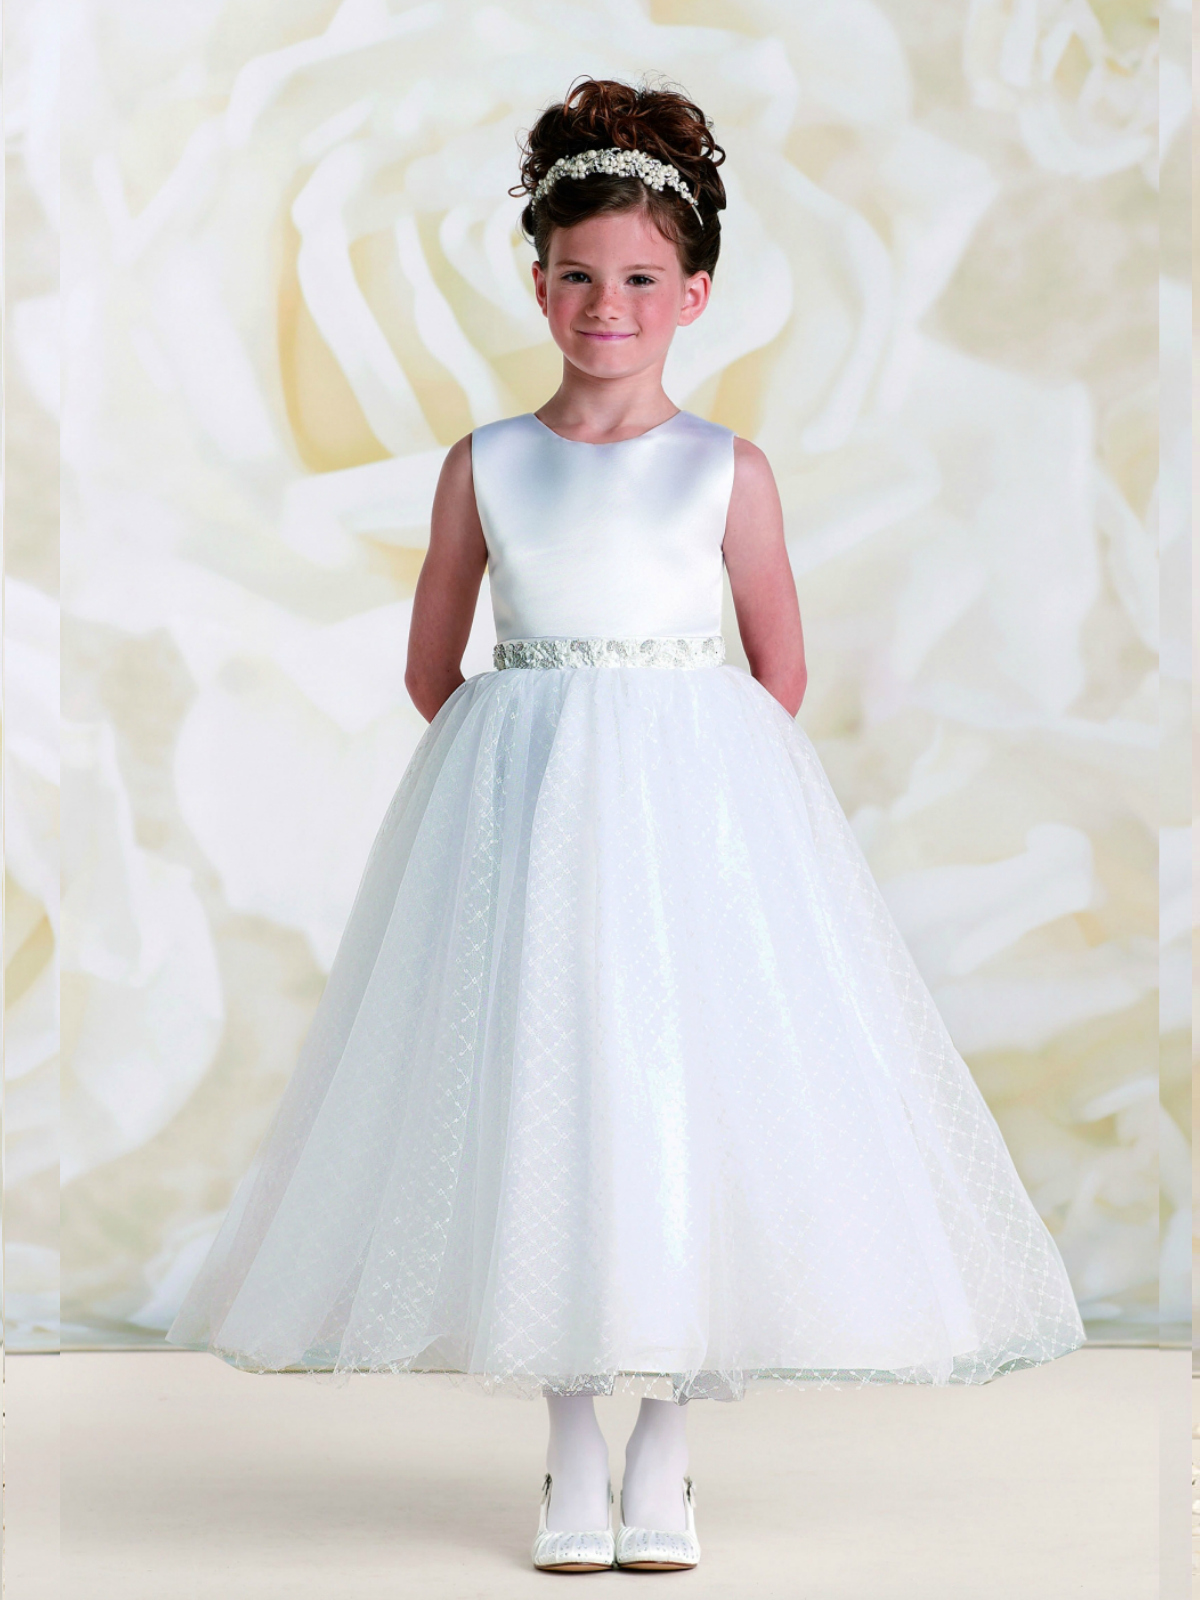 Designer Communion Dresses - Flower Girl Dresses - Flower Girl ...